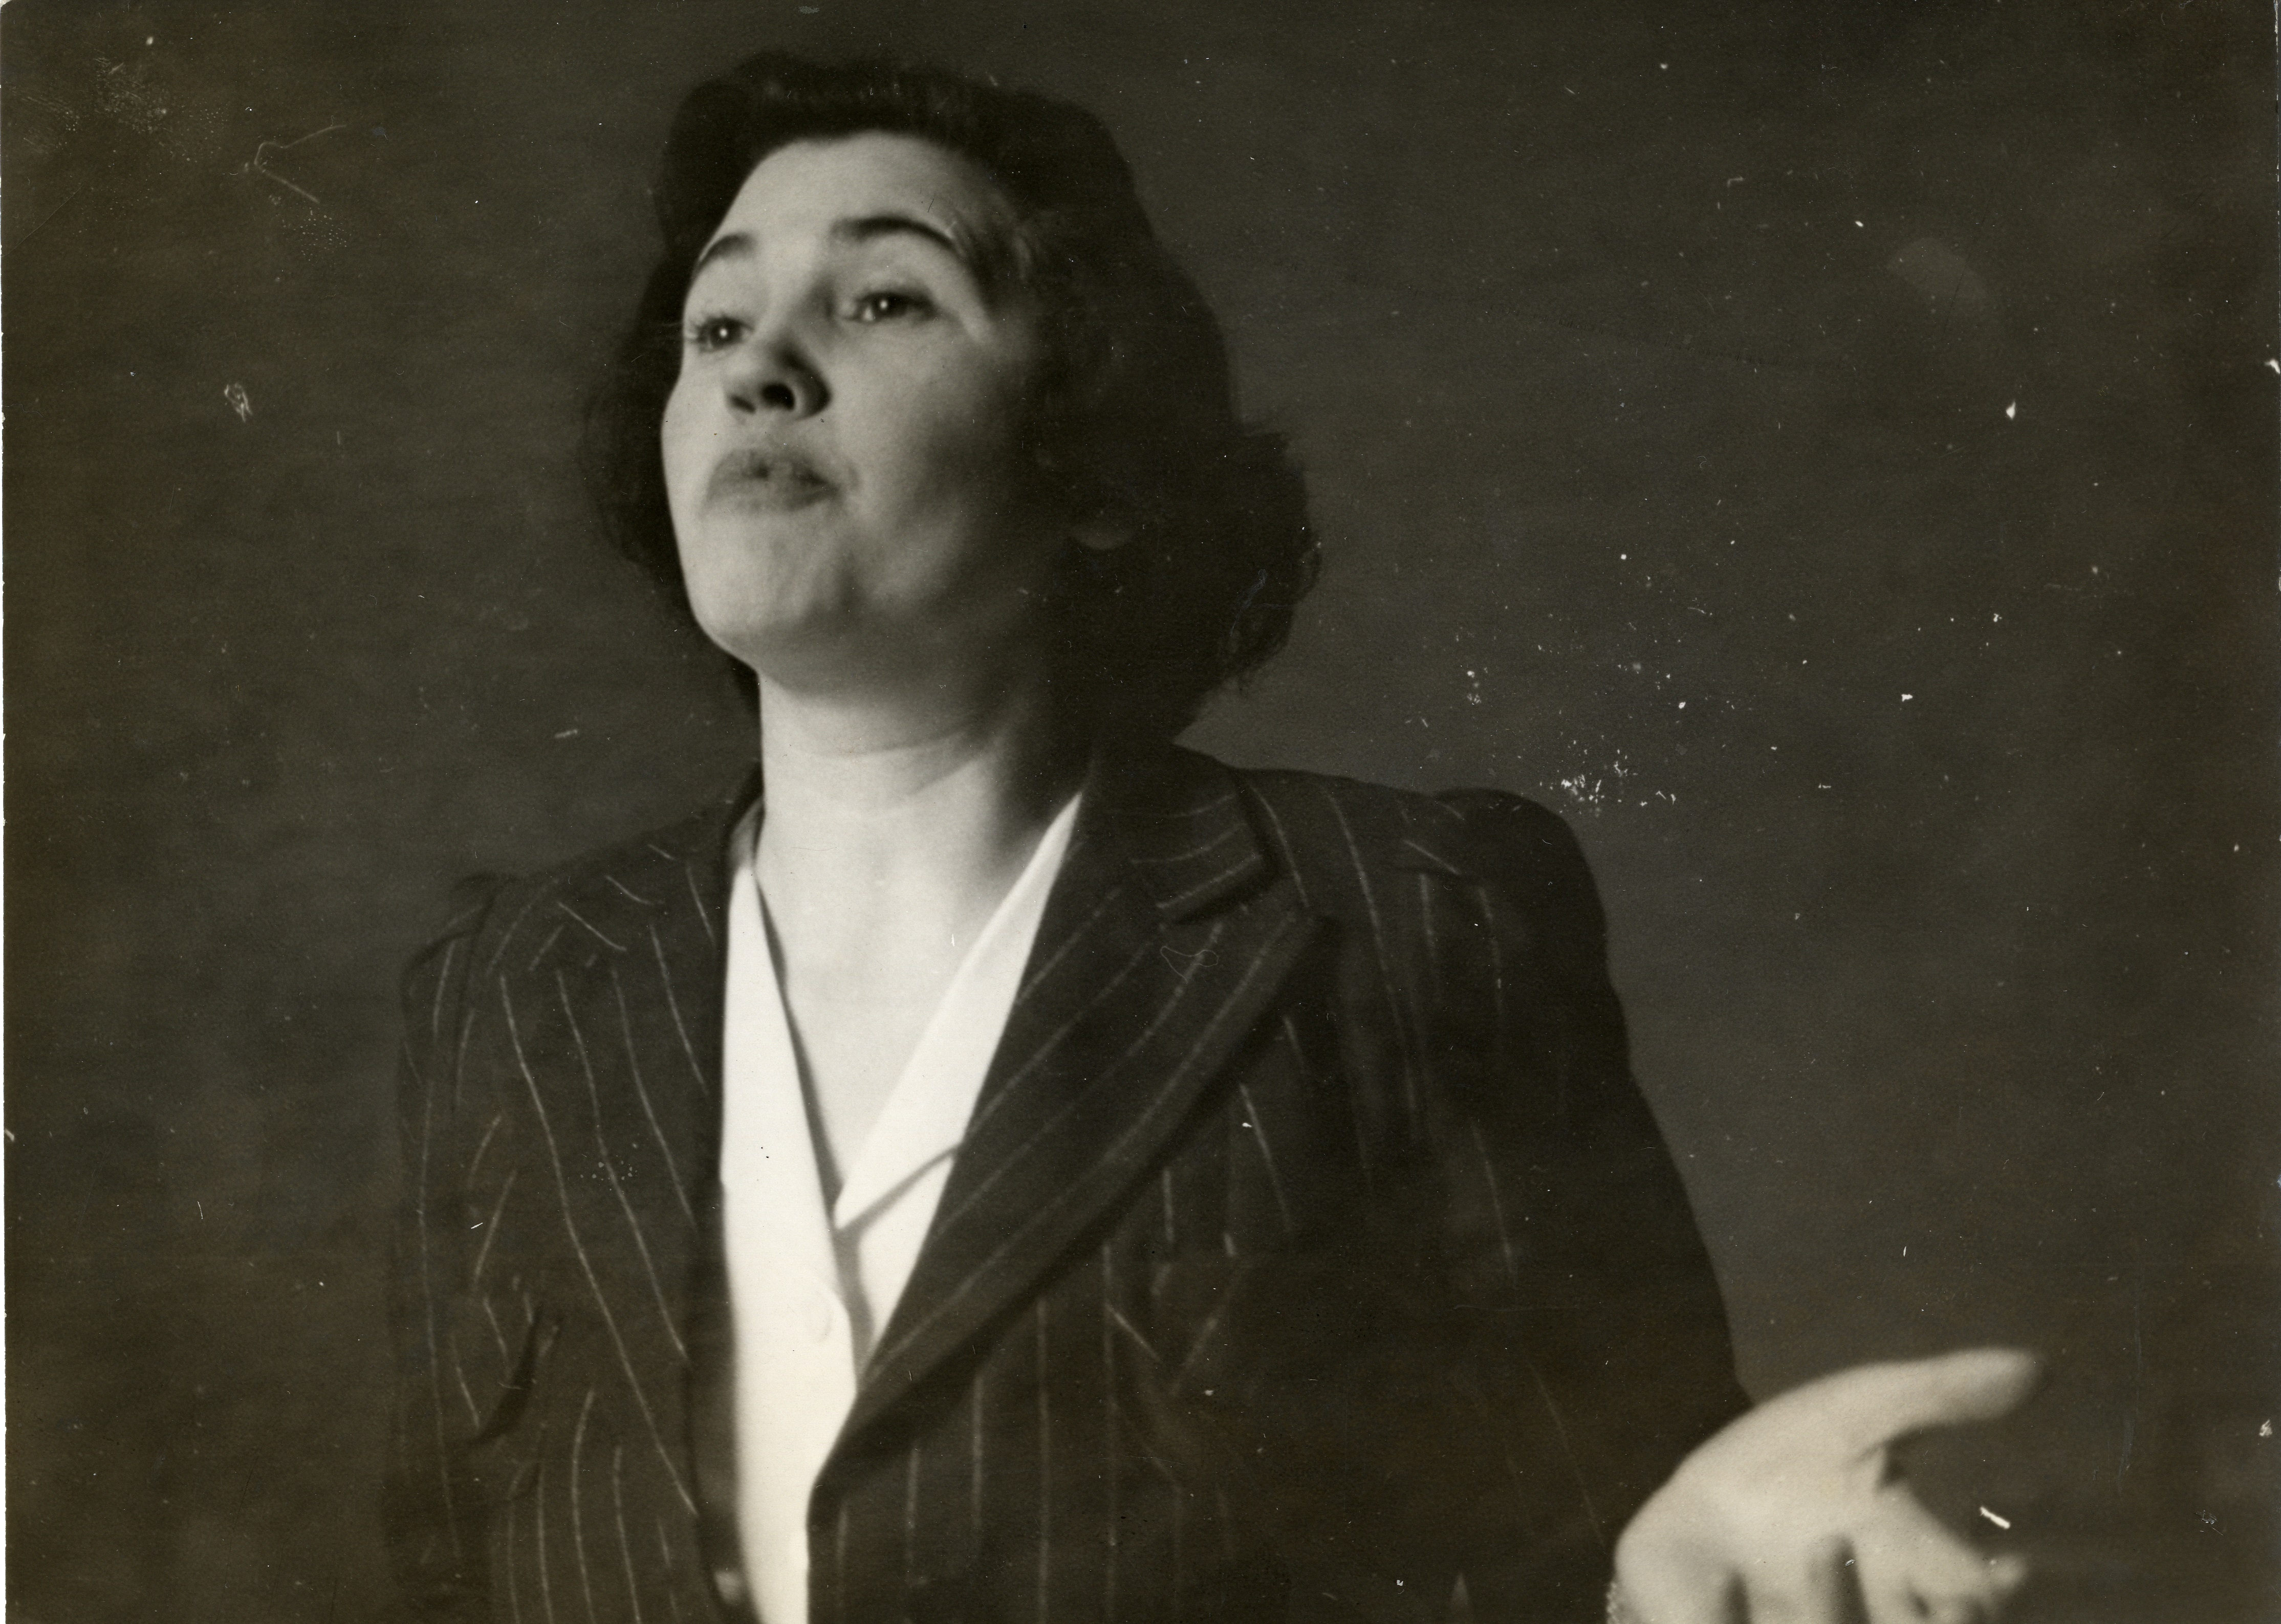 Jennie Lee lecturing in the 1930s.